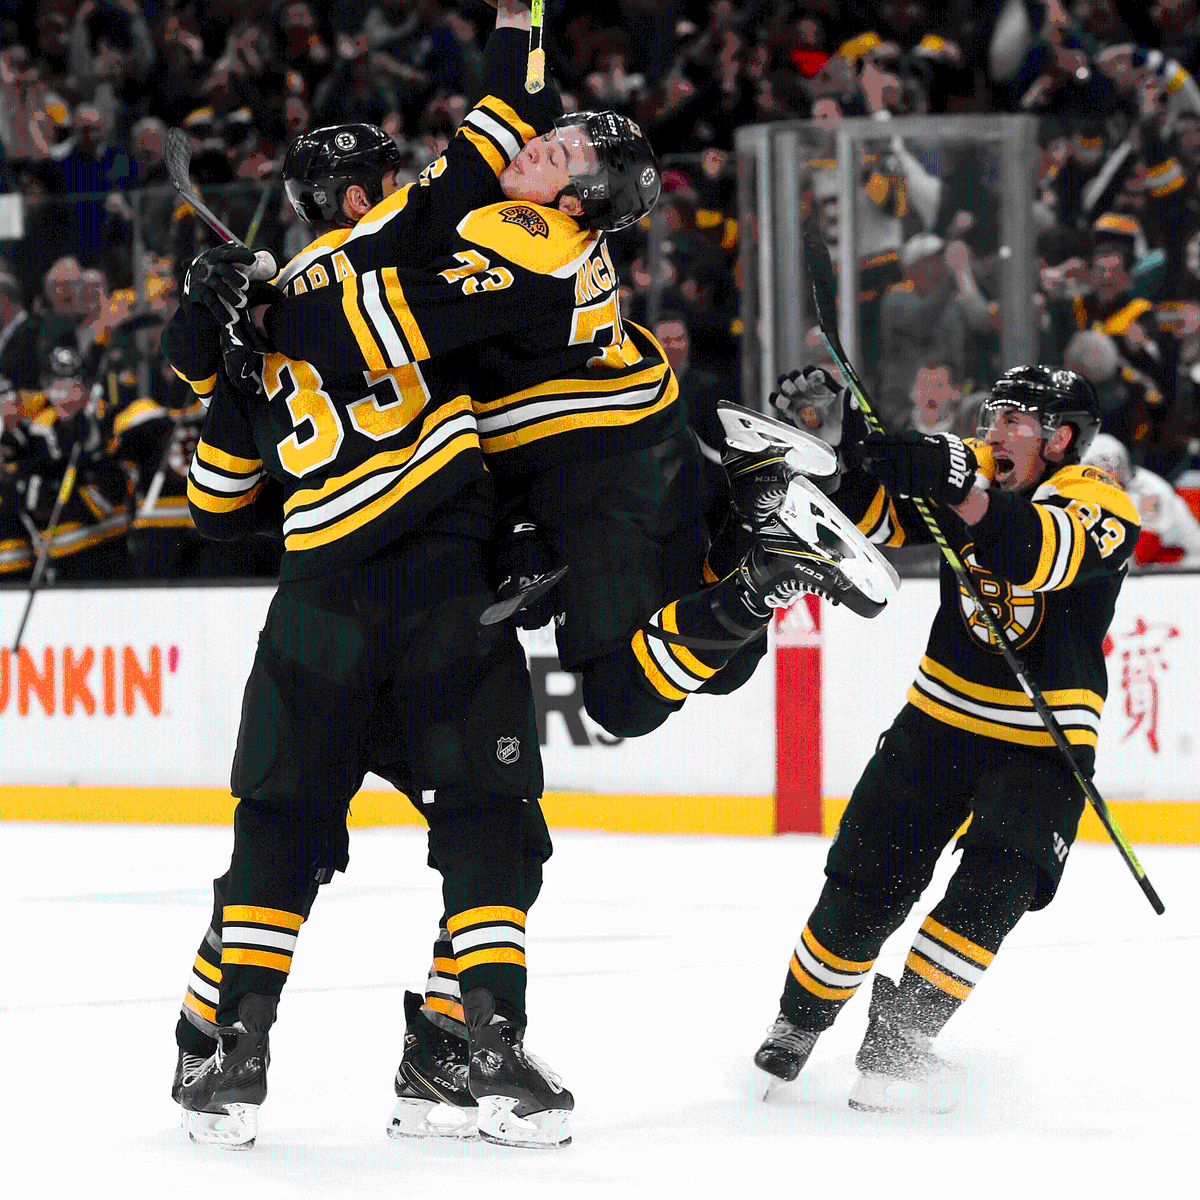 Nhl On Twitter Boston Bruins Hockey Bruins Hockey Bruins